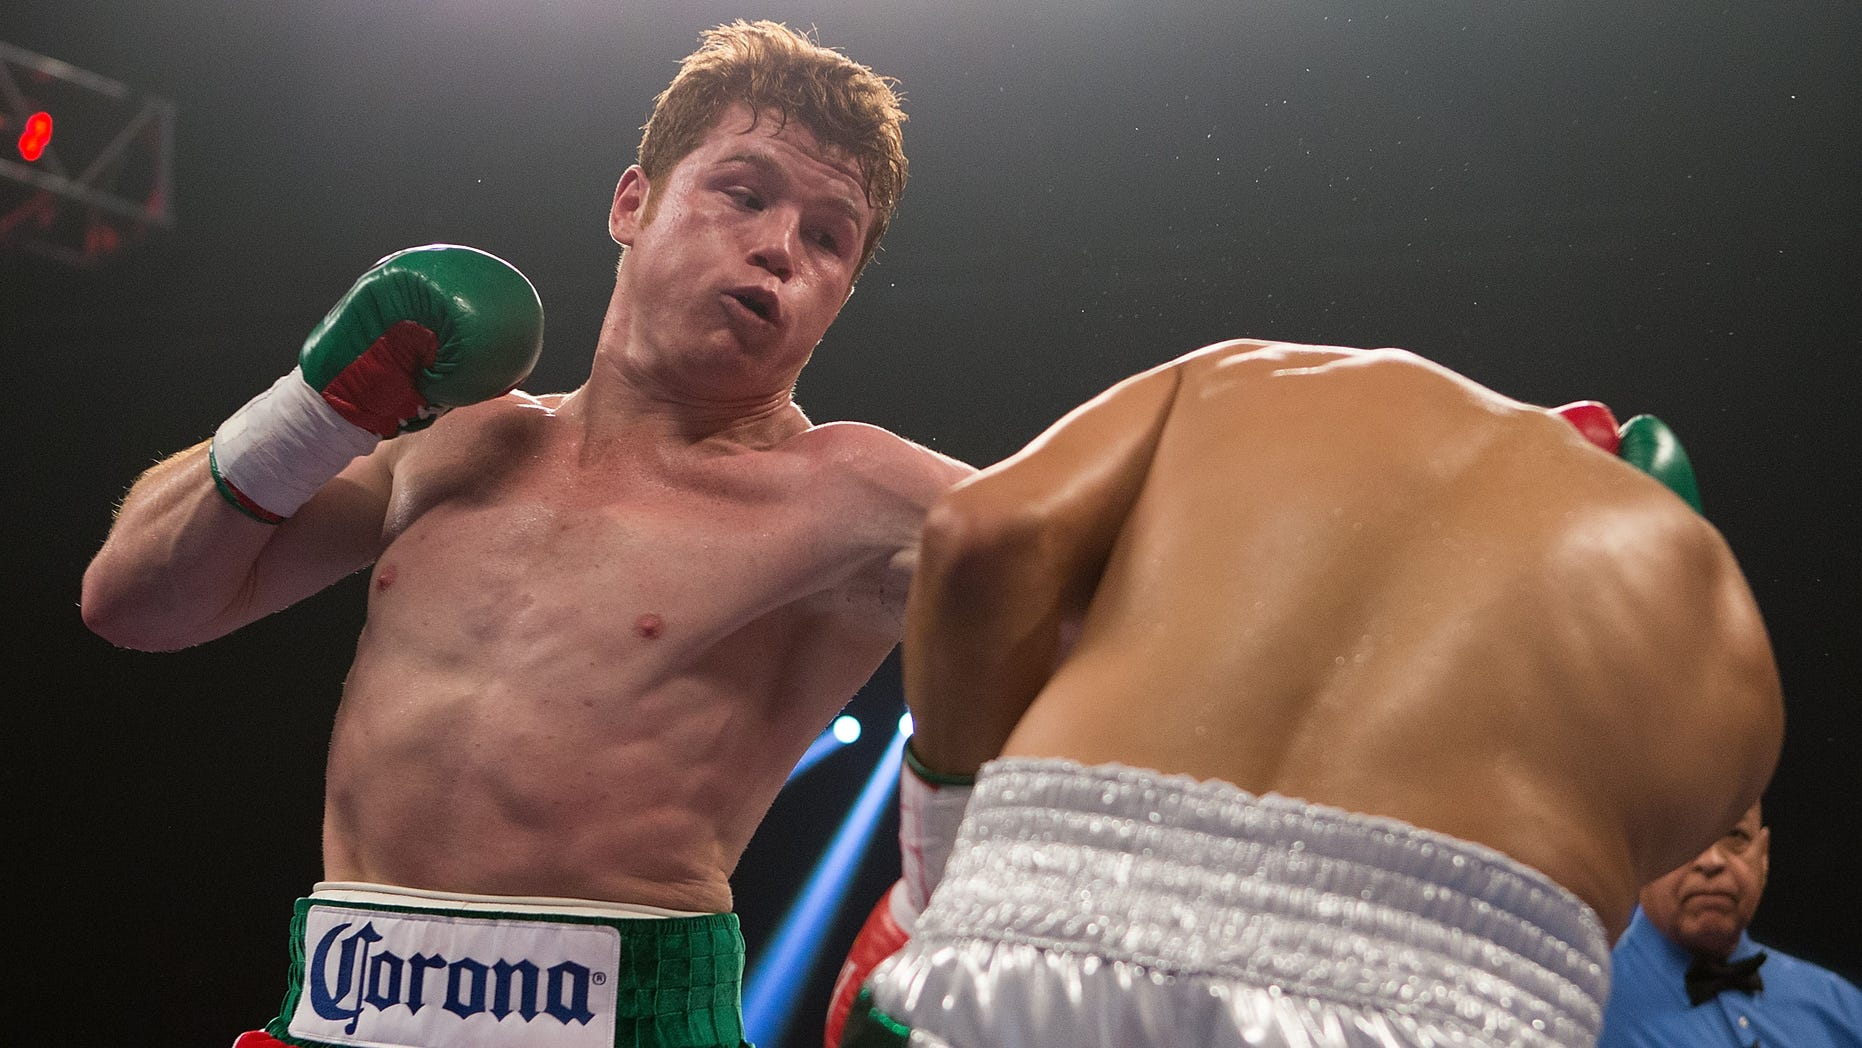 LAS VEGAS, NV - SEPTEMBER 15:  (L-R) Canelo Alvarez lands a left to the head of Josesito Lopez during their WBC super  welterweight title fight at MGM Grand Garden Arena on September 15, 2012 in Las Vegas, Nevada. (Photo by Josh Hedges/Getty Images)